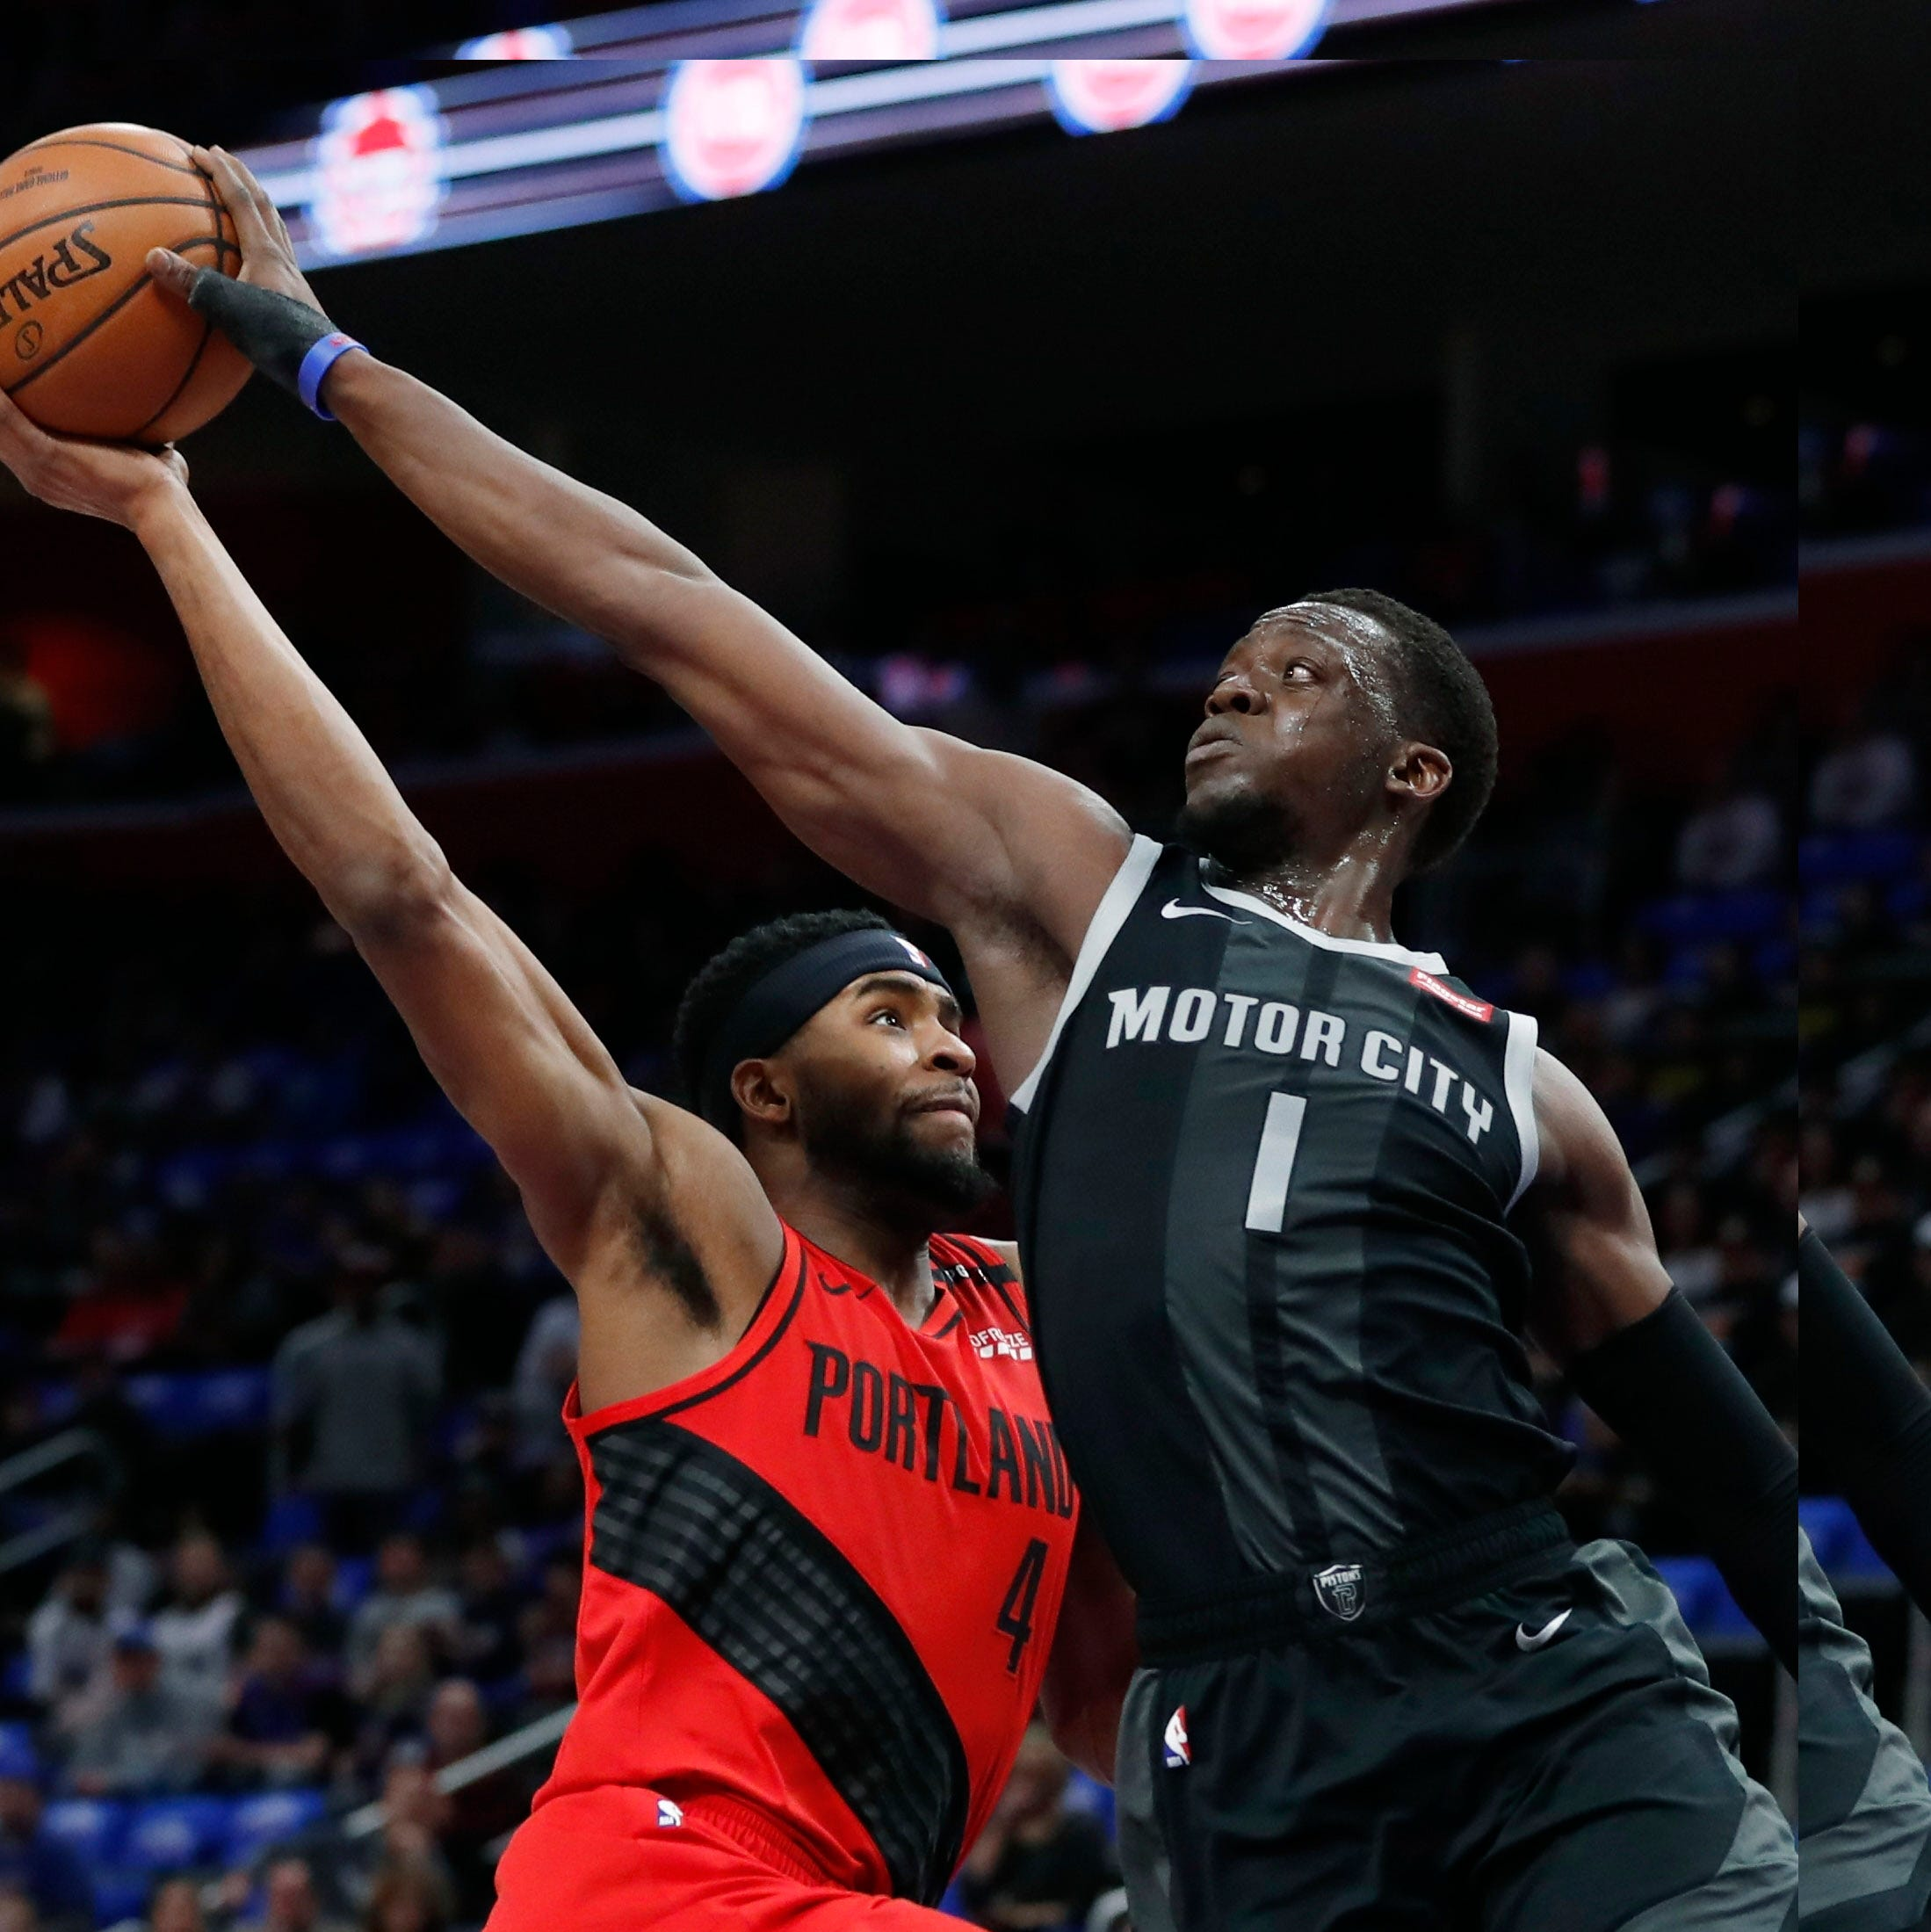 'We made it work': Minus Griffin, Pistons topple Trail Blazers to win 11th straight at home